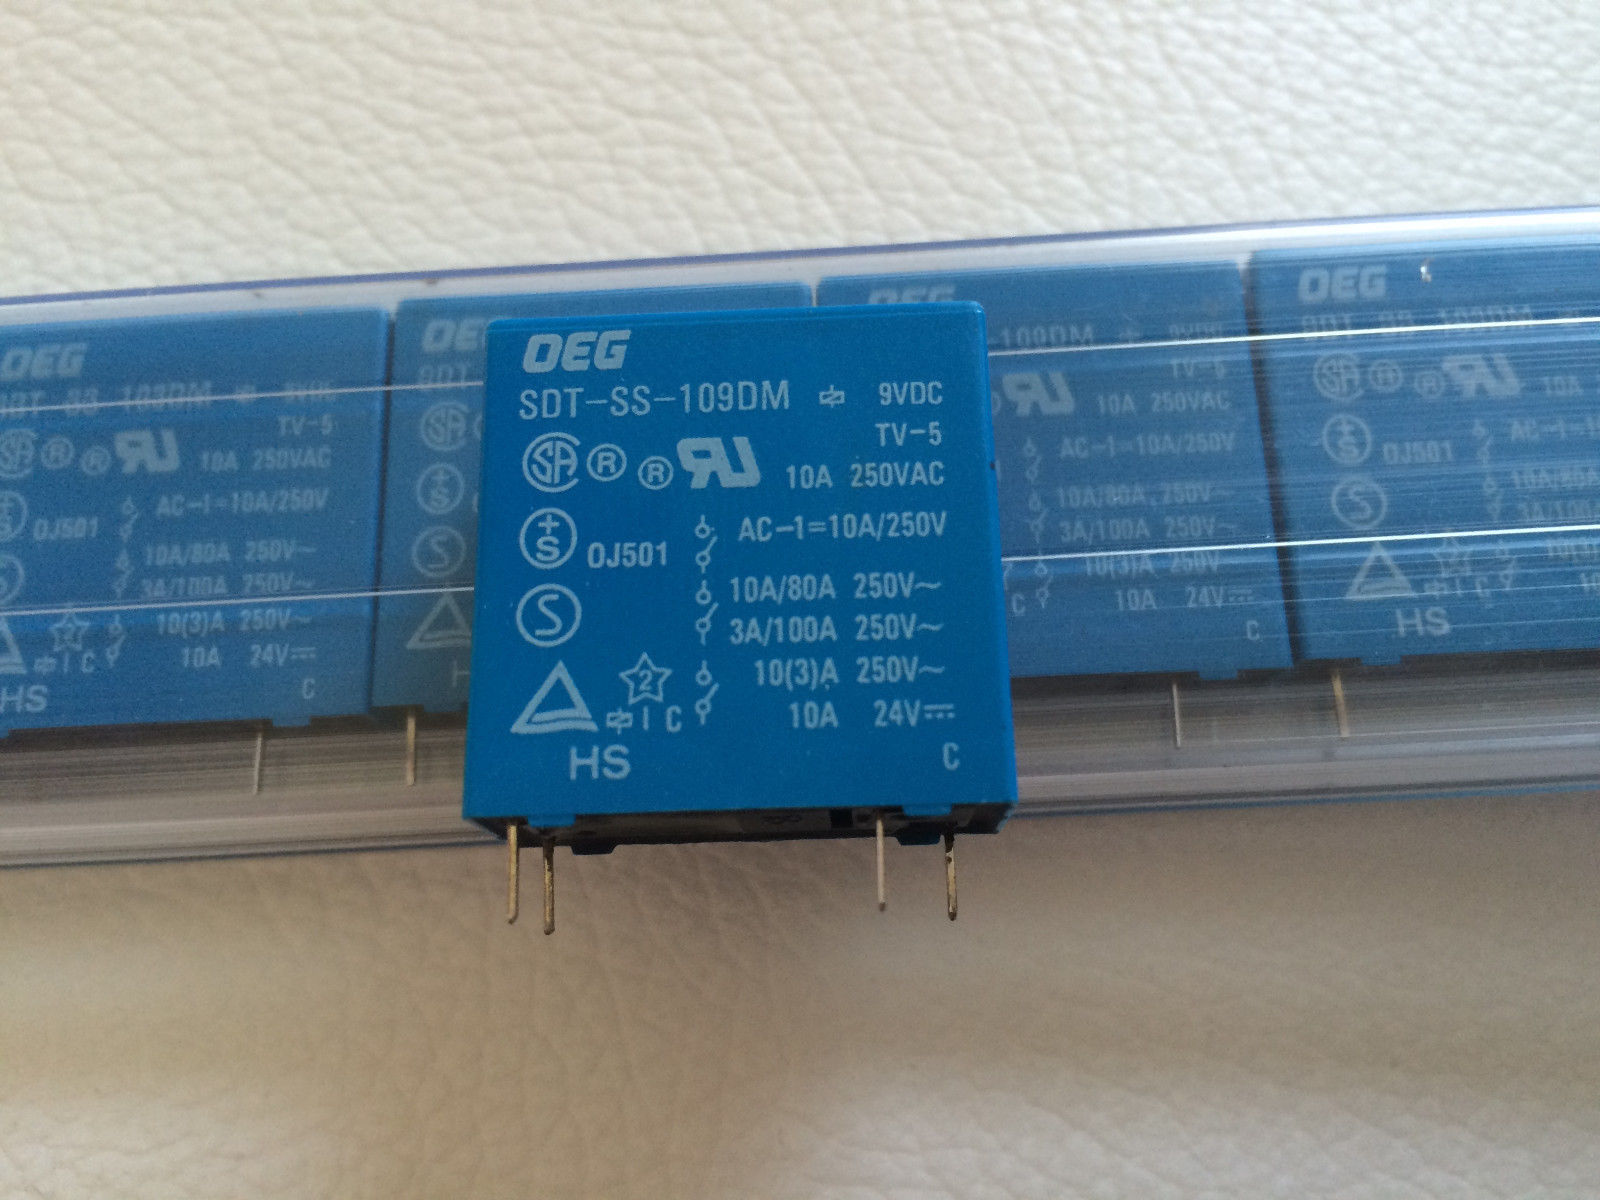 Sdt Ss 109 Dm Relay Gen Purpose Spst 10 A 9 and 18 similar items